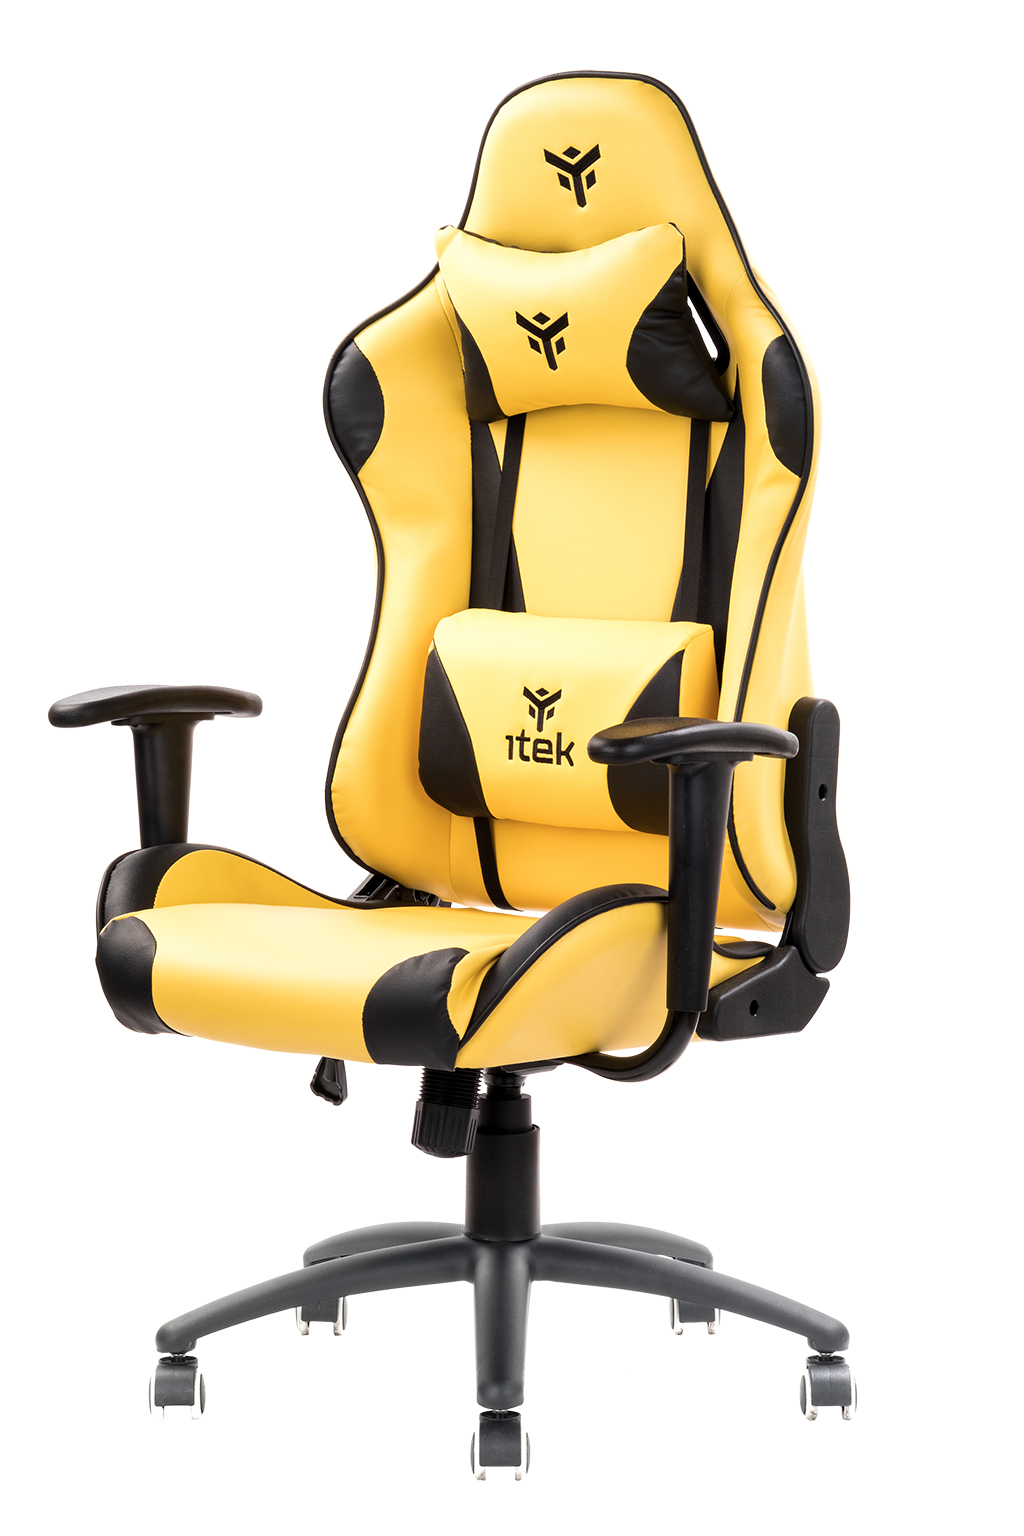 itek Gaming Chair PLAYCOM PM20 - PVC, Doppio Cuscino, Schienale Reclinabile, Giallo Nero